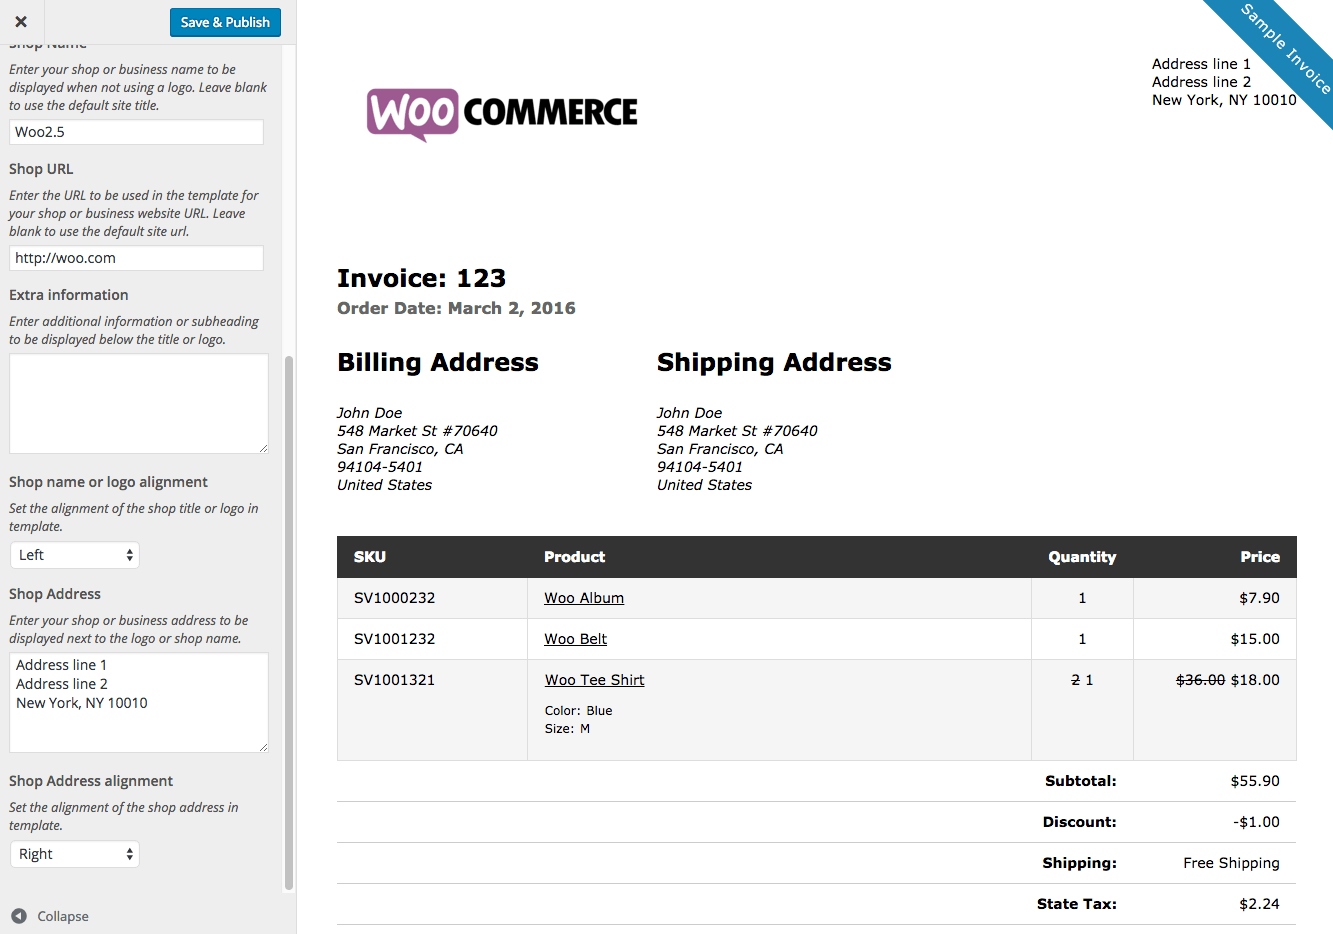 Pigbrotherus  Sweet Woocommerce Print Invoices Amp Packing Lists  Woocommerce Docs With Lovable Woocommerce Print Invoices  Packing Lists Customizer With Comely Till Receipt Also Gross Receipts Tax Los Angeles In Addition Sangria Receipt And Customer Copy Receipt As Well As Dallas Taxi Receipt Additionally Receipt Books For Sale From Docswoocommercecom With Pigbrotherus  Lovable Woocommerce Print Invoices Amp Packing Lists  Woocommerce Docs With Comely Woocommerce Print Invoices  Packing Lists Customizer And Sweet Till Receipt Also Gross Receipts Tax Los Angeles In Addition Sangria Receipt From Docswoocommercecom